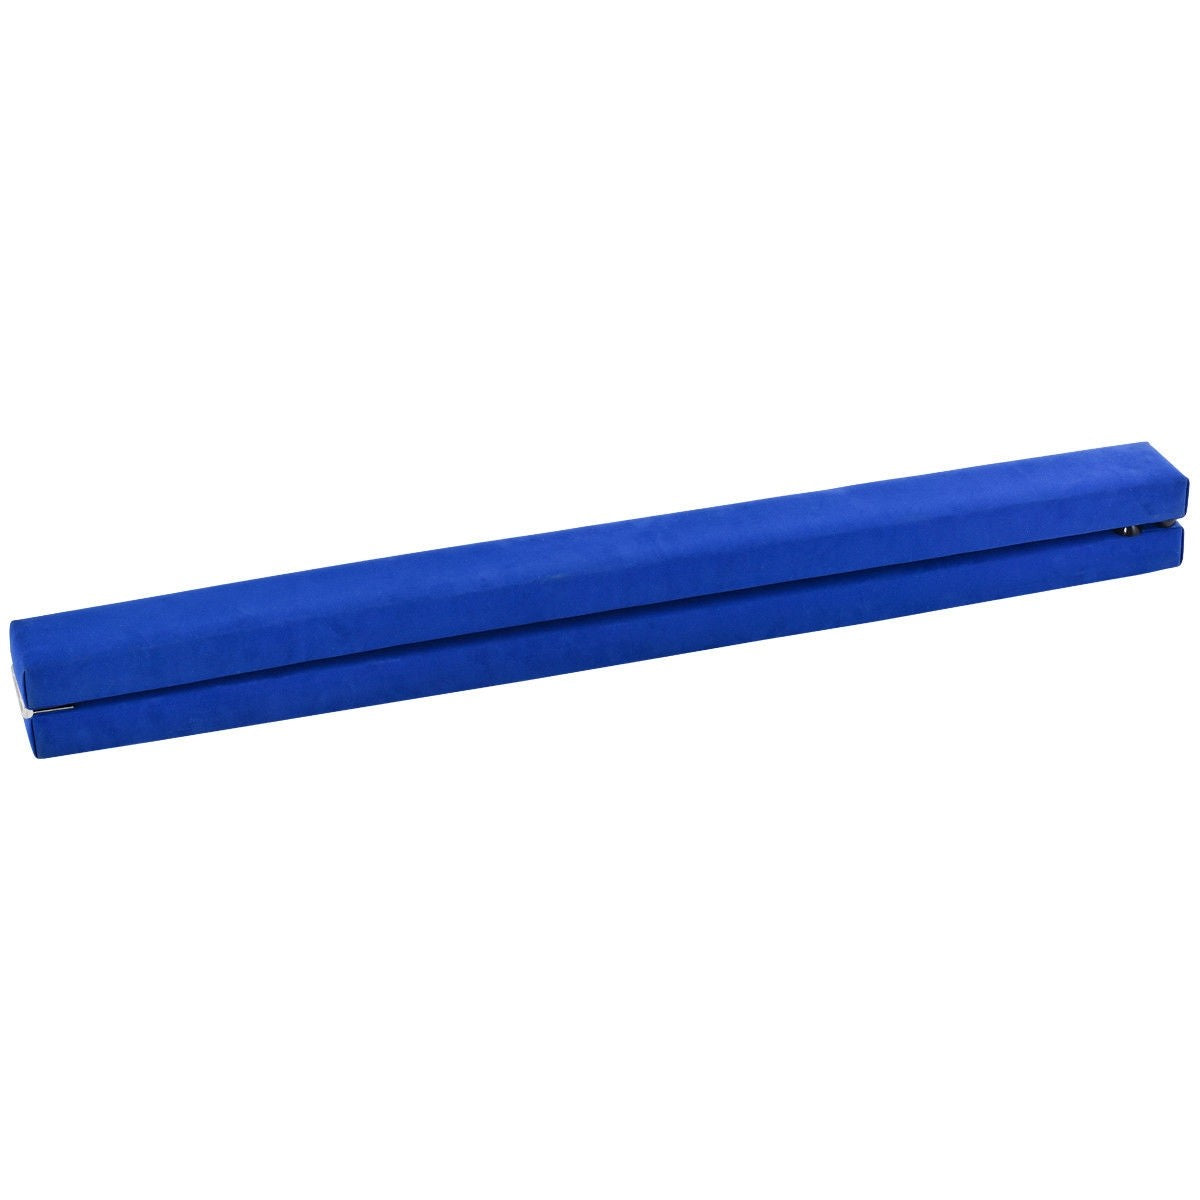 Sectional Gymnastics Floor Balance Beam - 8 ft - Uplift Active